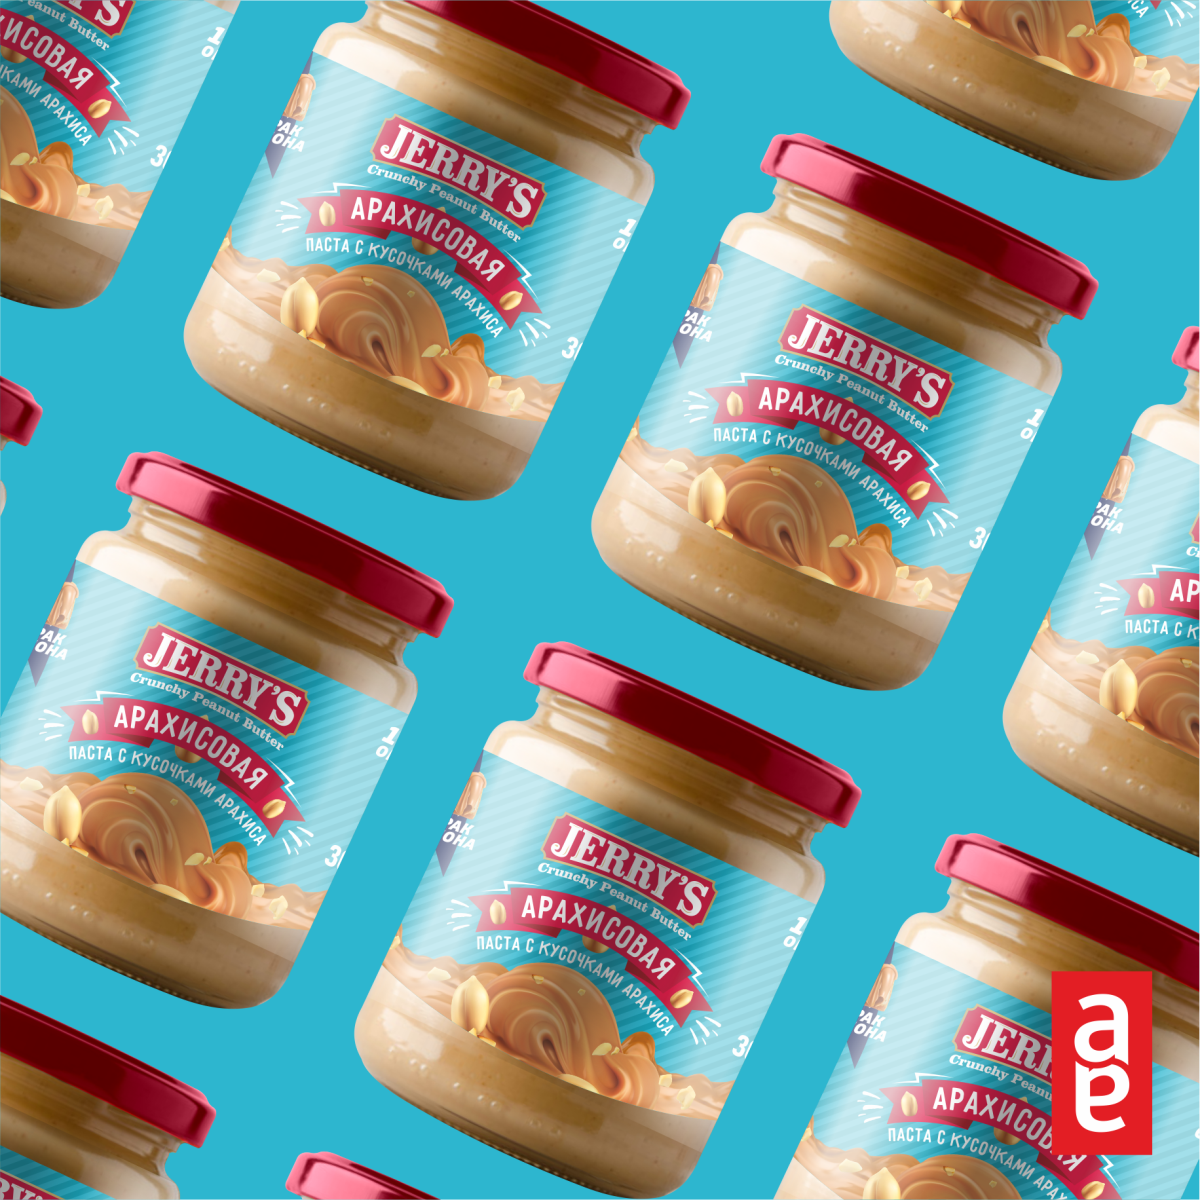 Peanut Butter Name and Packaging Creation